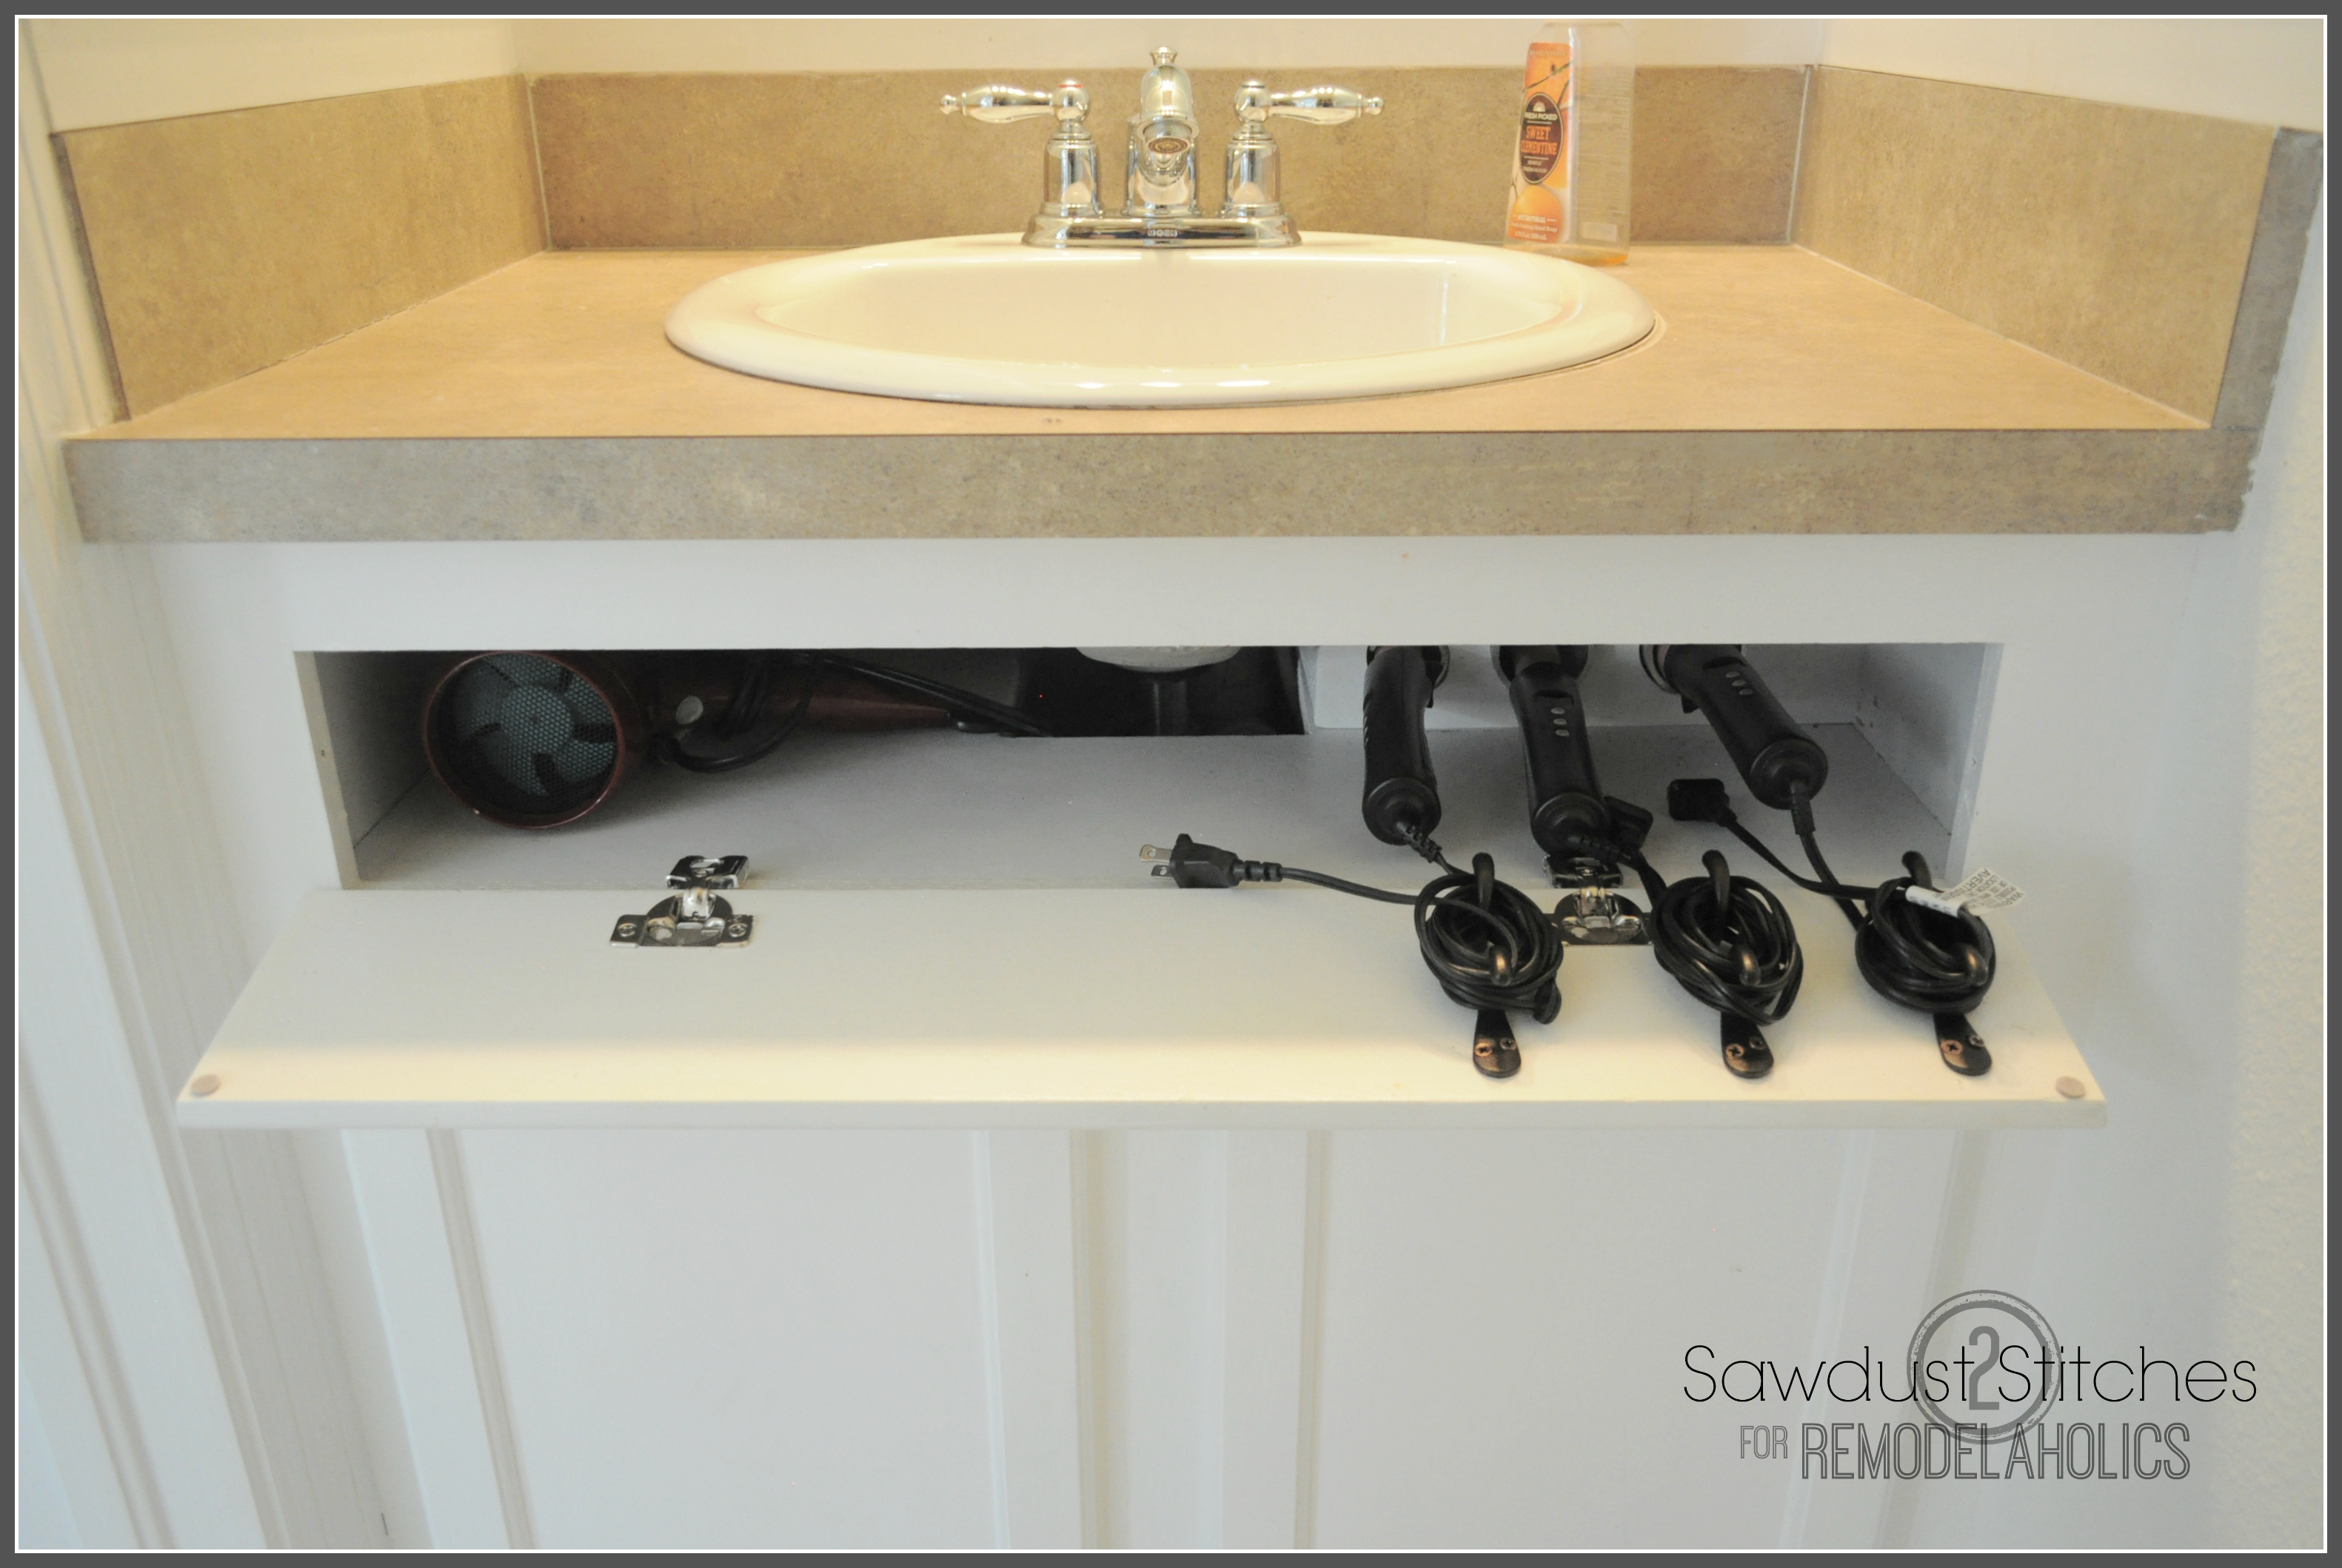 Remodelaholic | DIY Under-the-Sink Hair Tool Storage